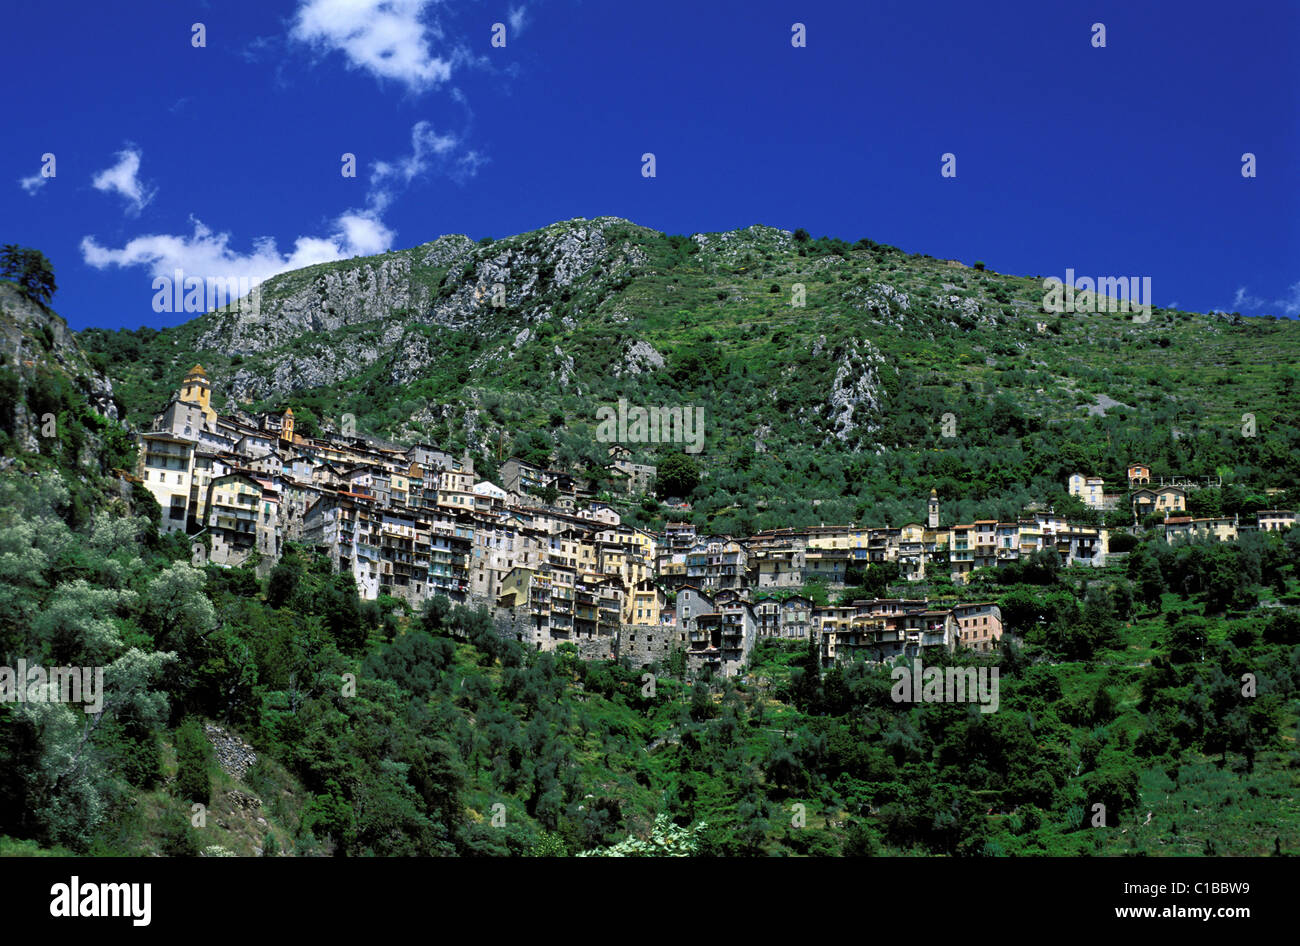 France, Alpes Maritimes, Valley of the Roya (hinterland of Nice), perched village of Saorge - Stock Image